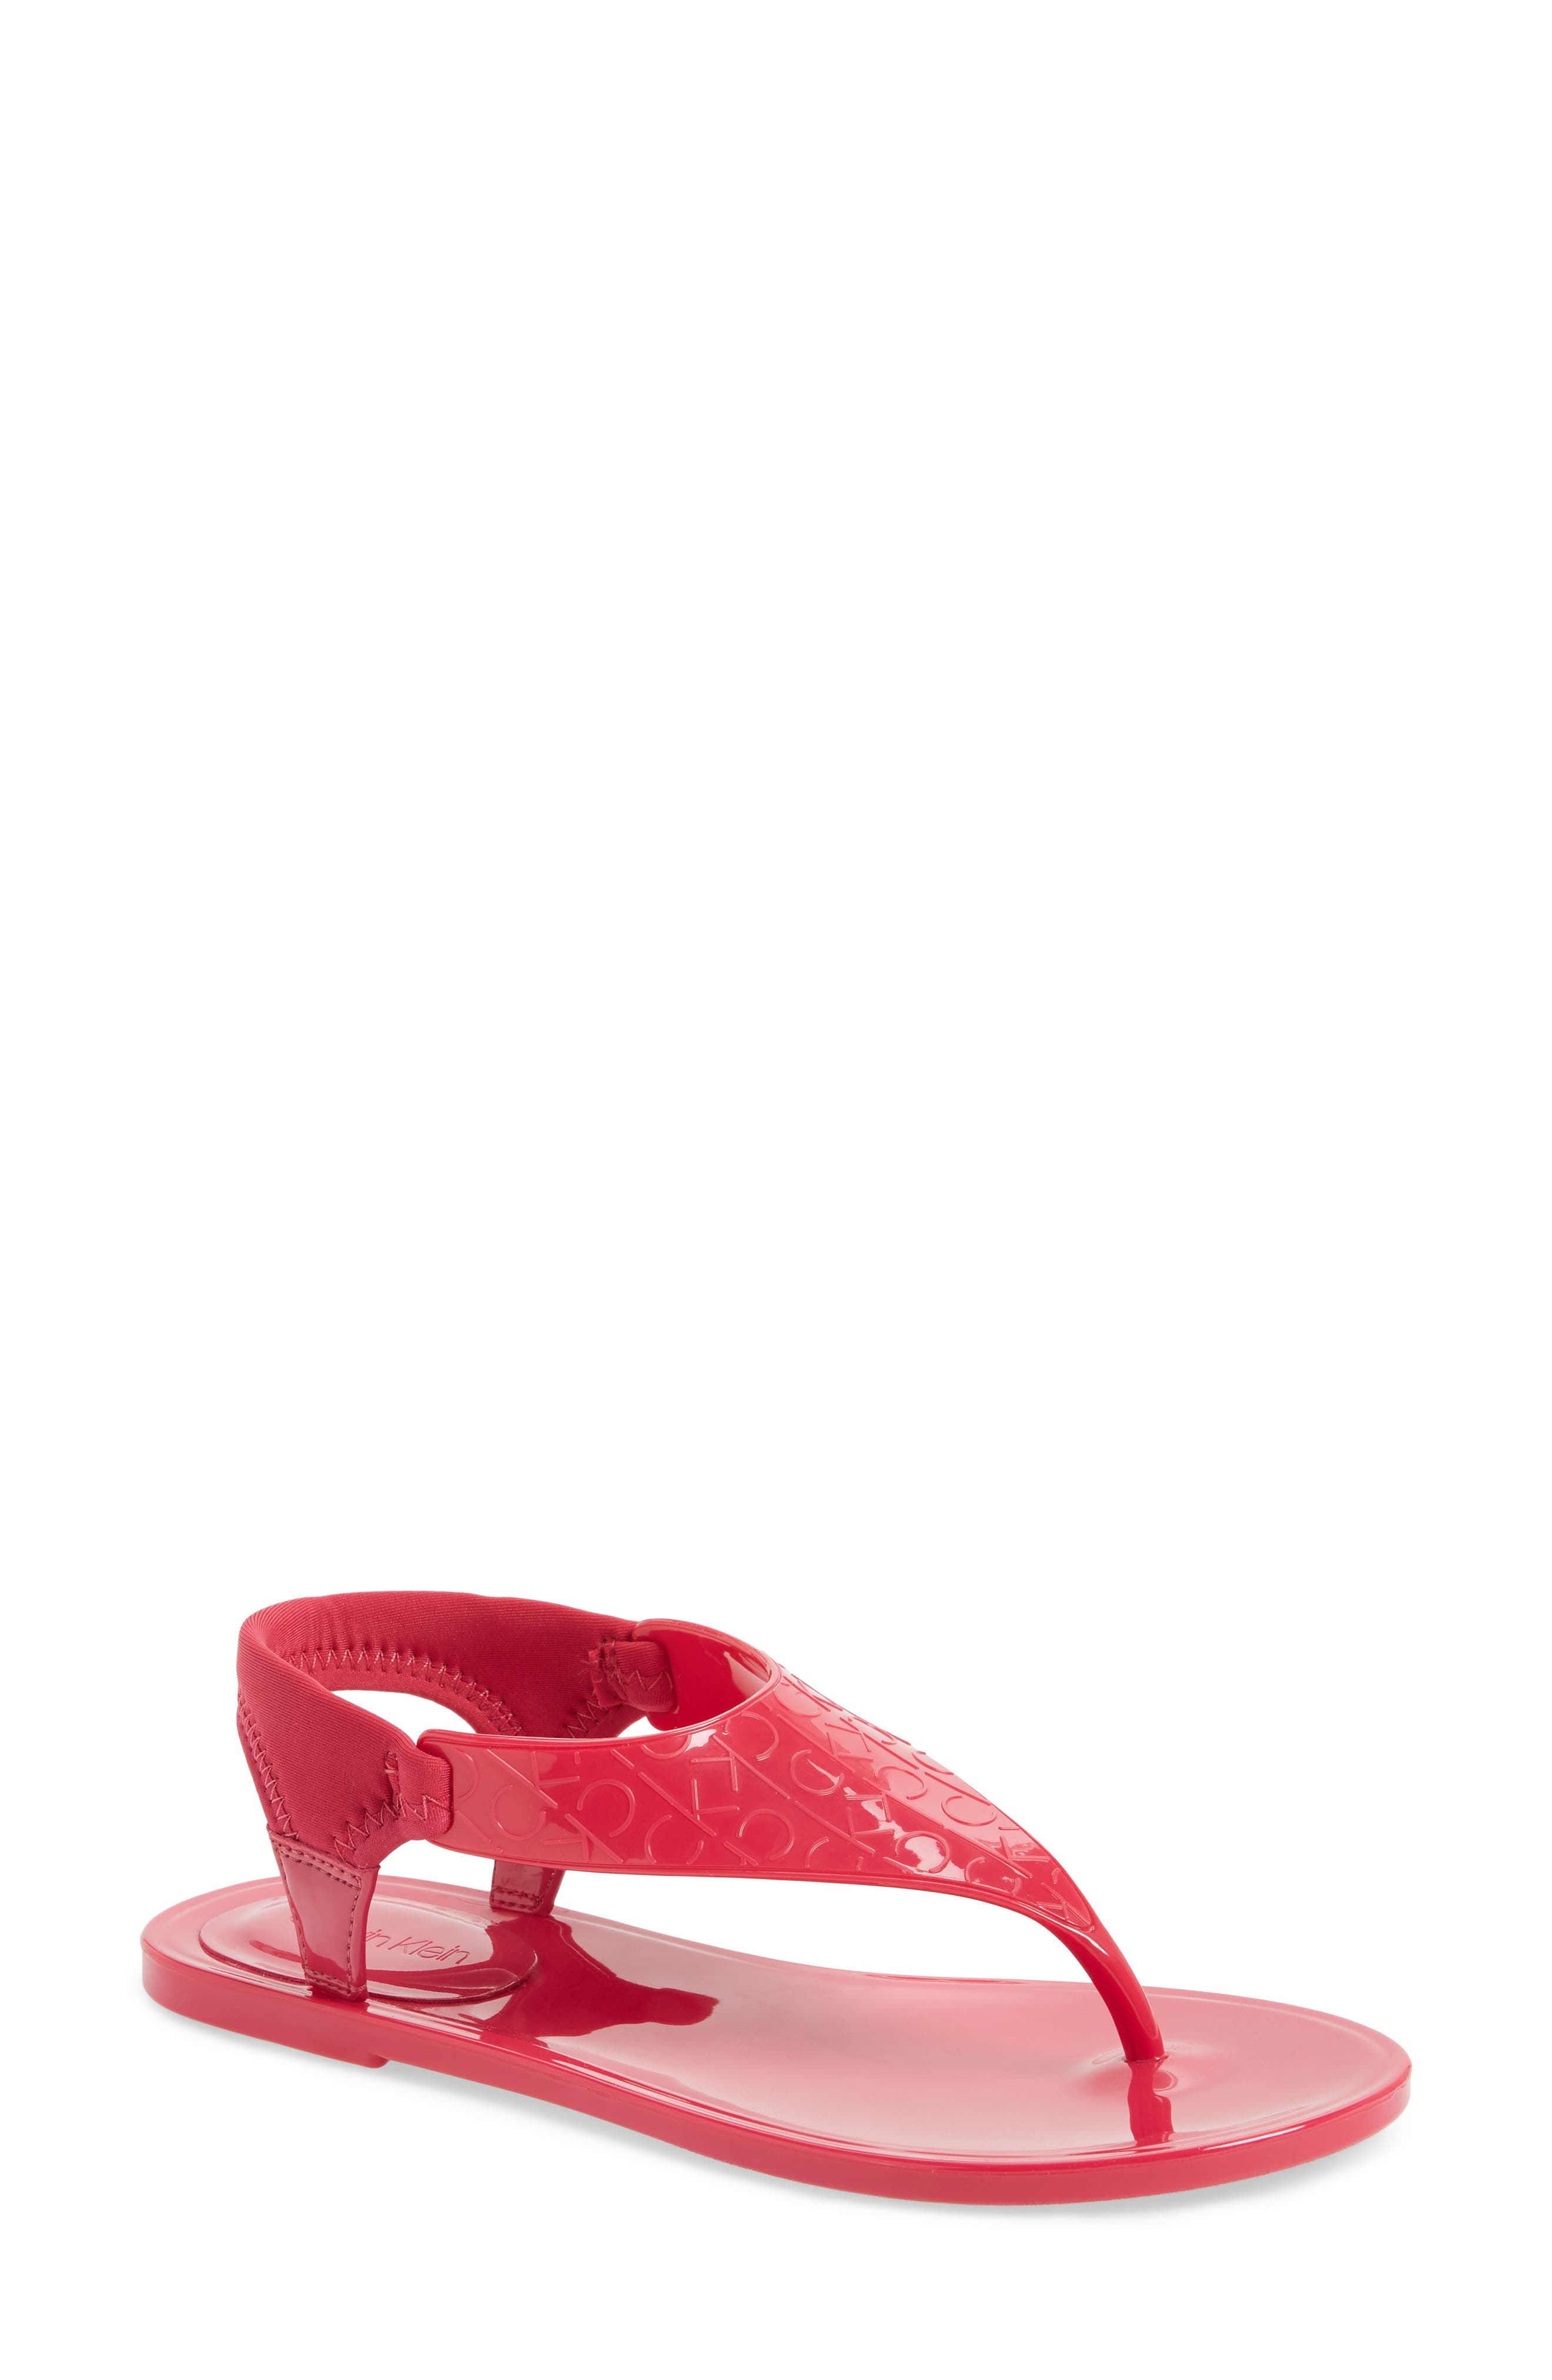 Janny Jelly Sandal,                             Main thumbnail 1, color,                             Hibiscus Pink